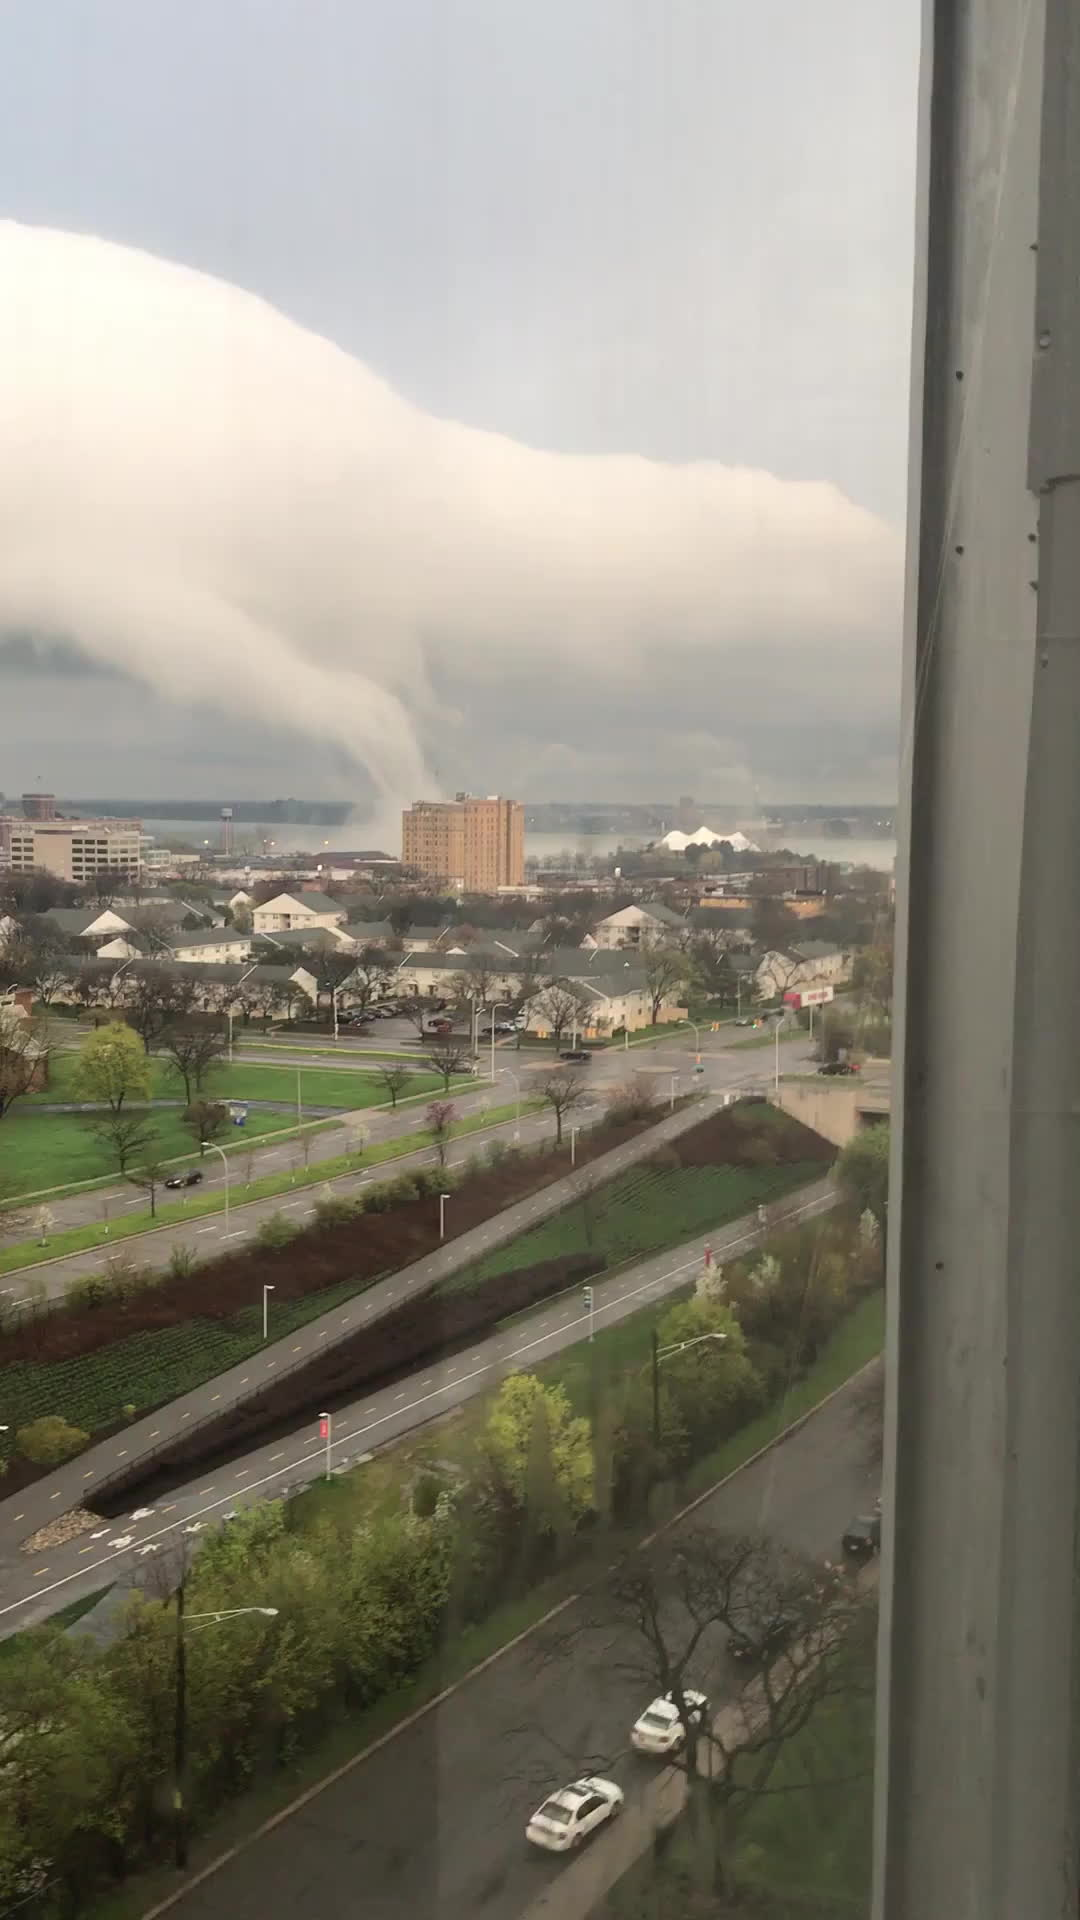 WeatherGifs, Waterspout in Downtown Detroit? GIFs